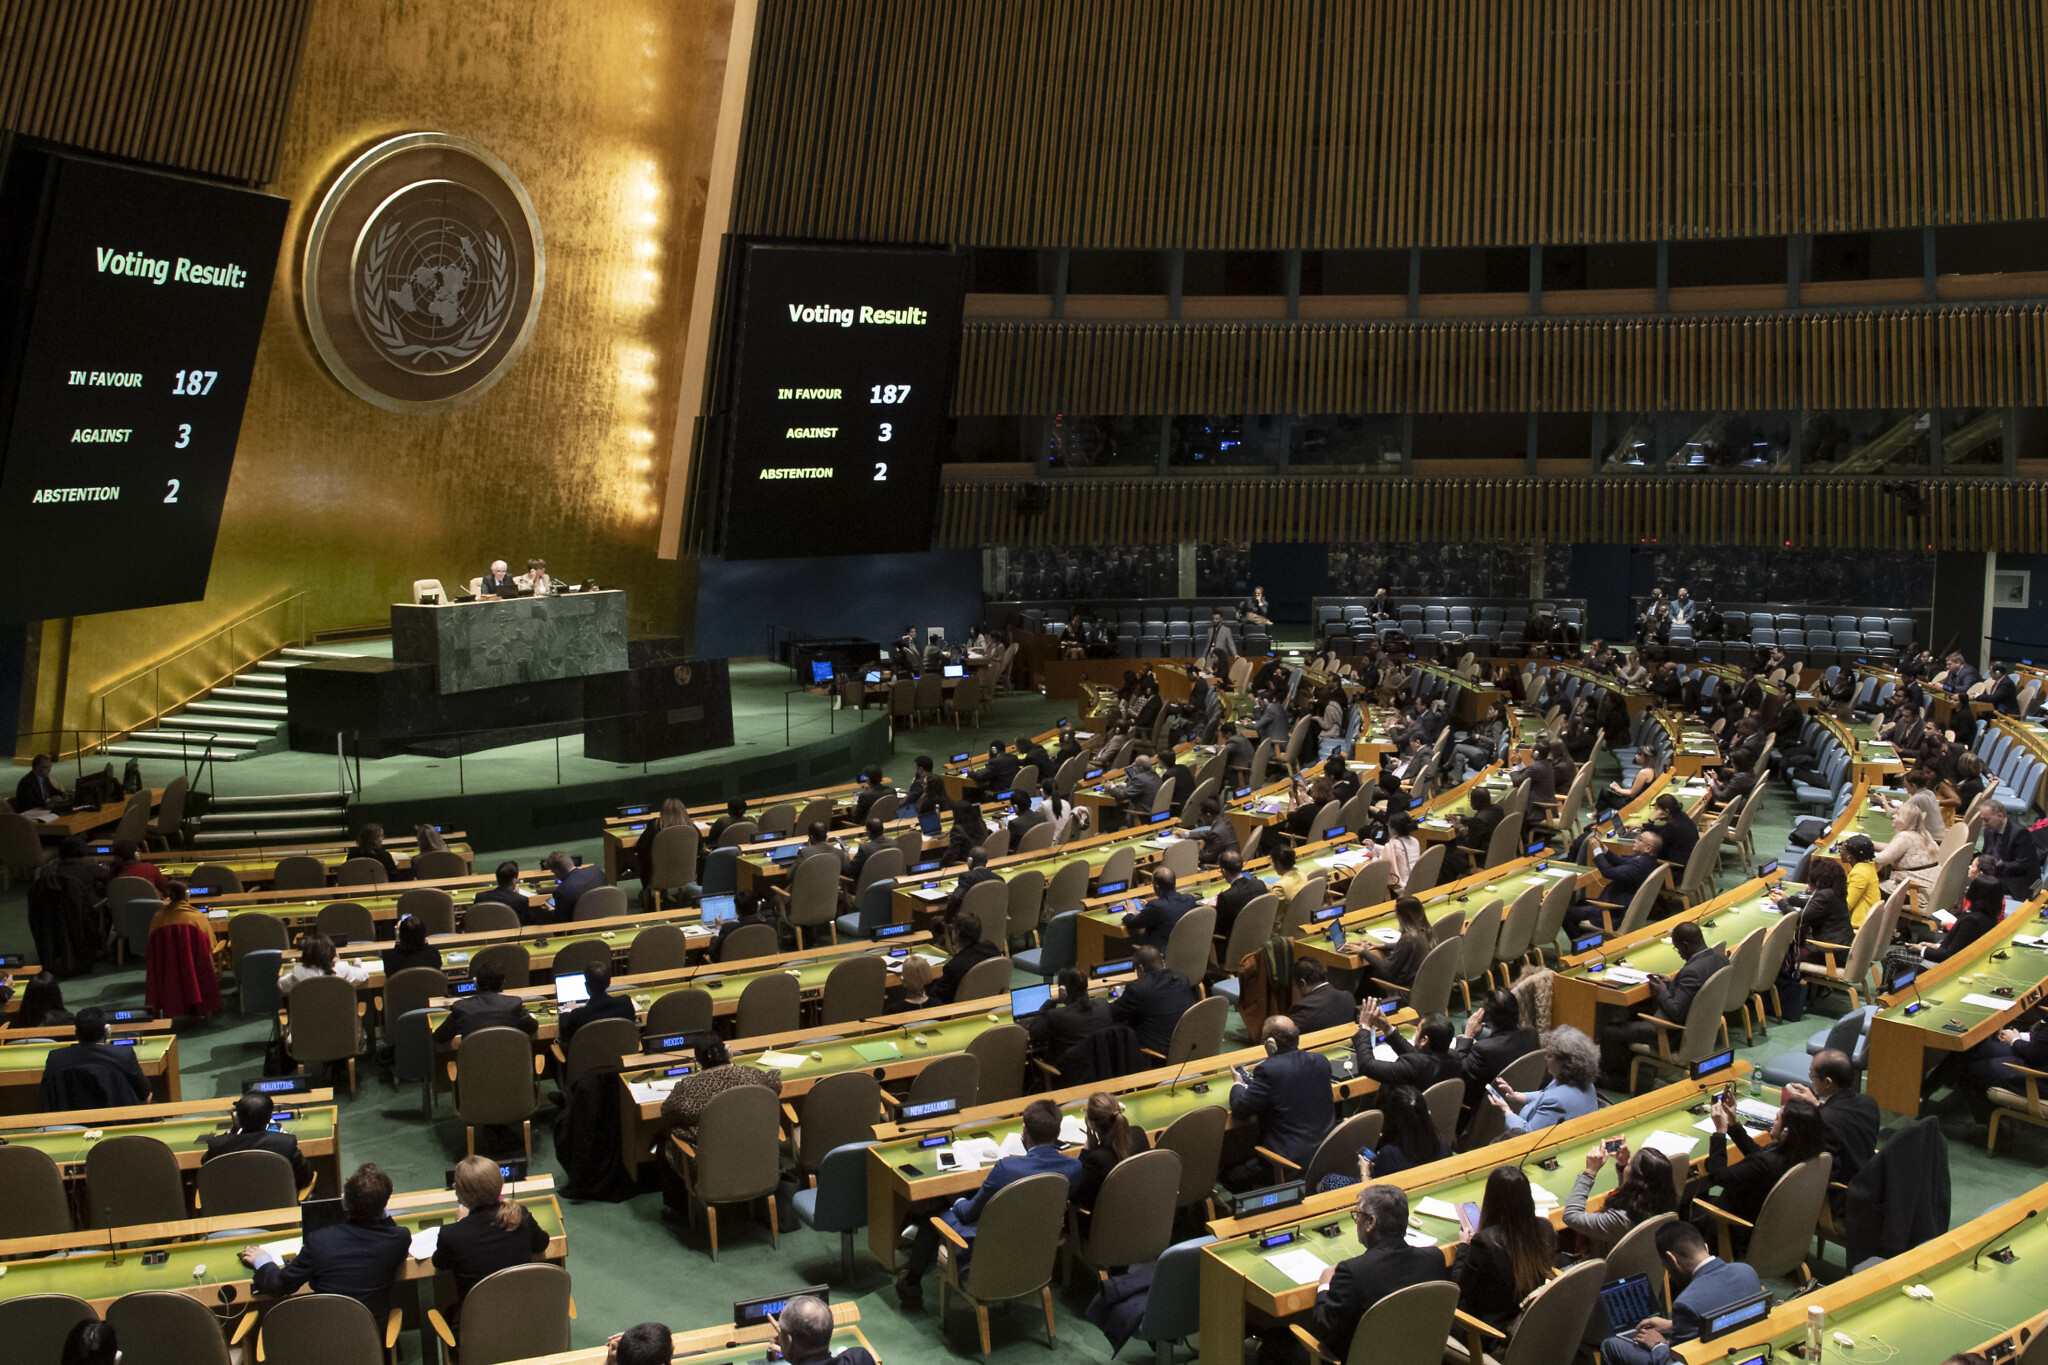 View of the United Nations General Assembly during a vote the US-imposed on Cuba